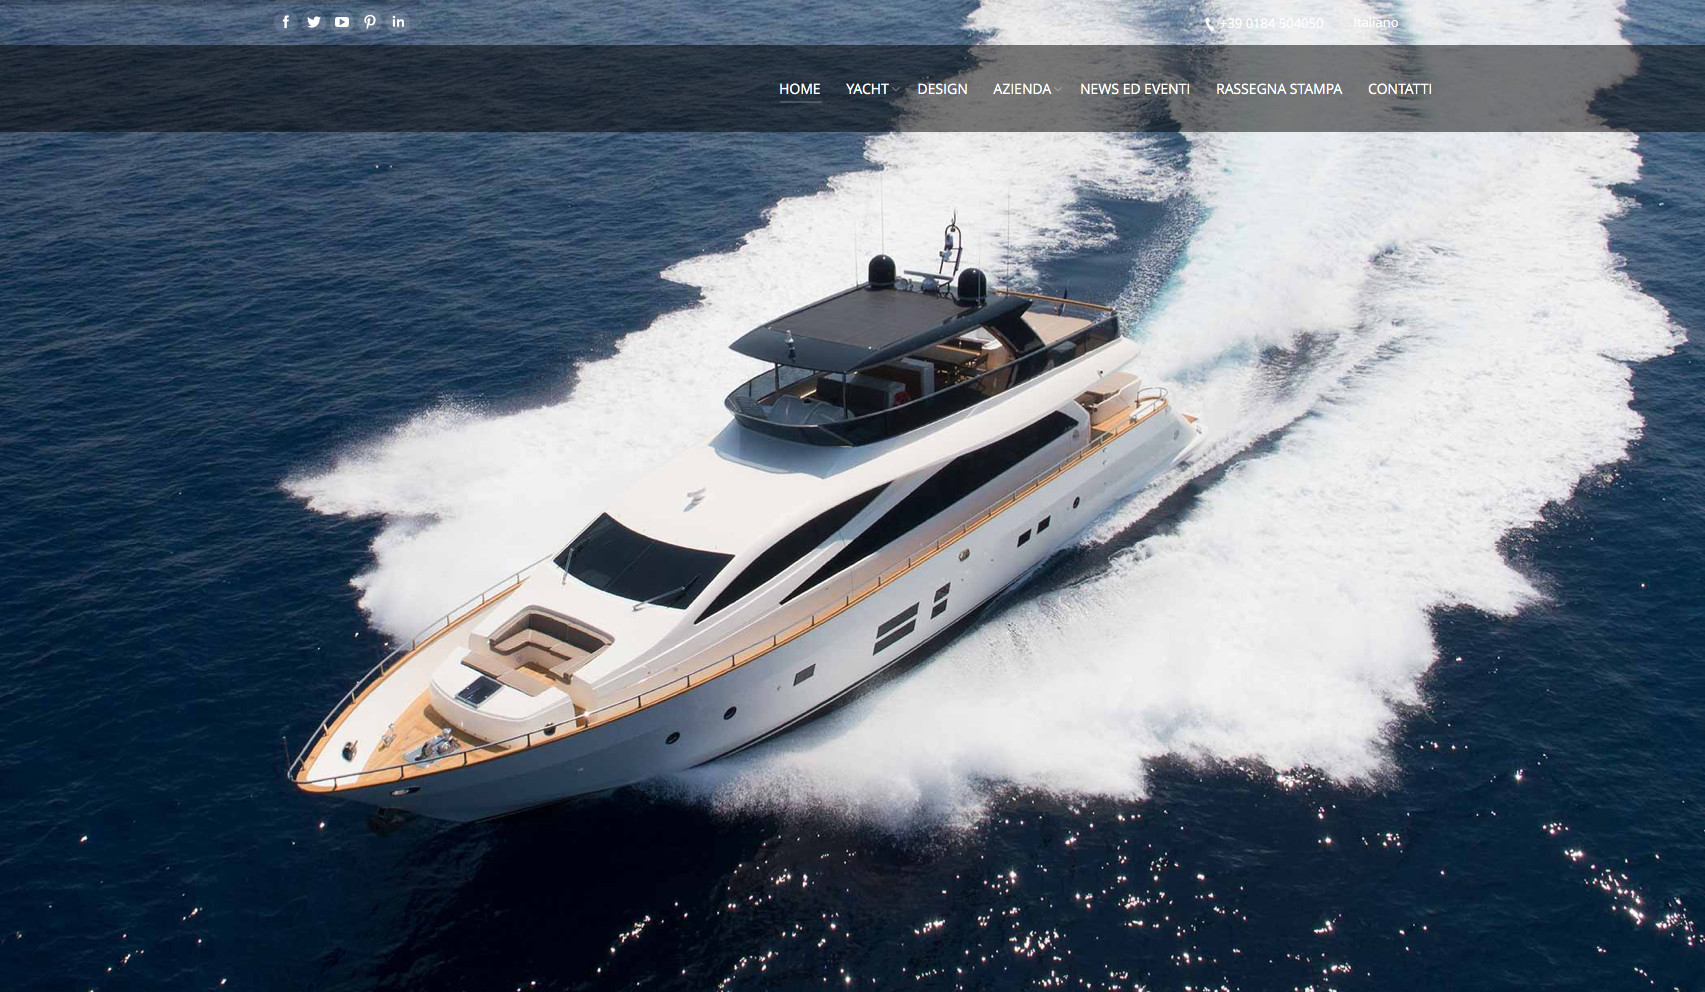 BmTec Amer Yachts